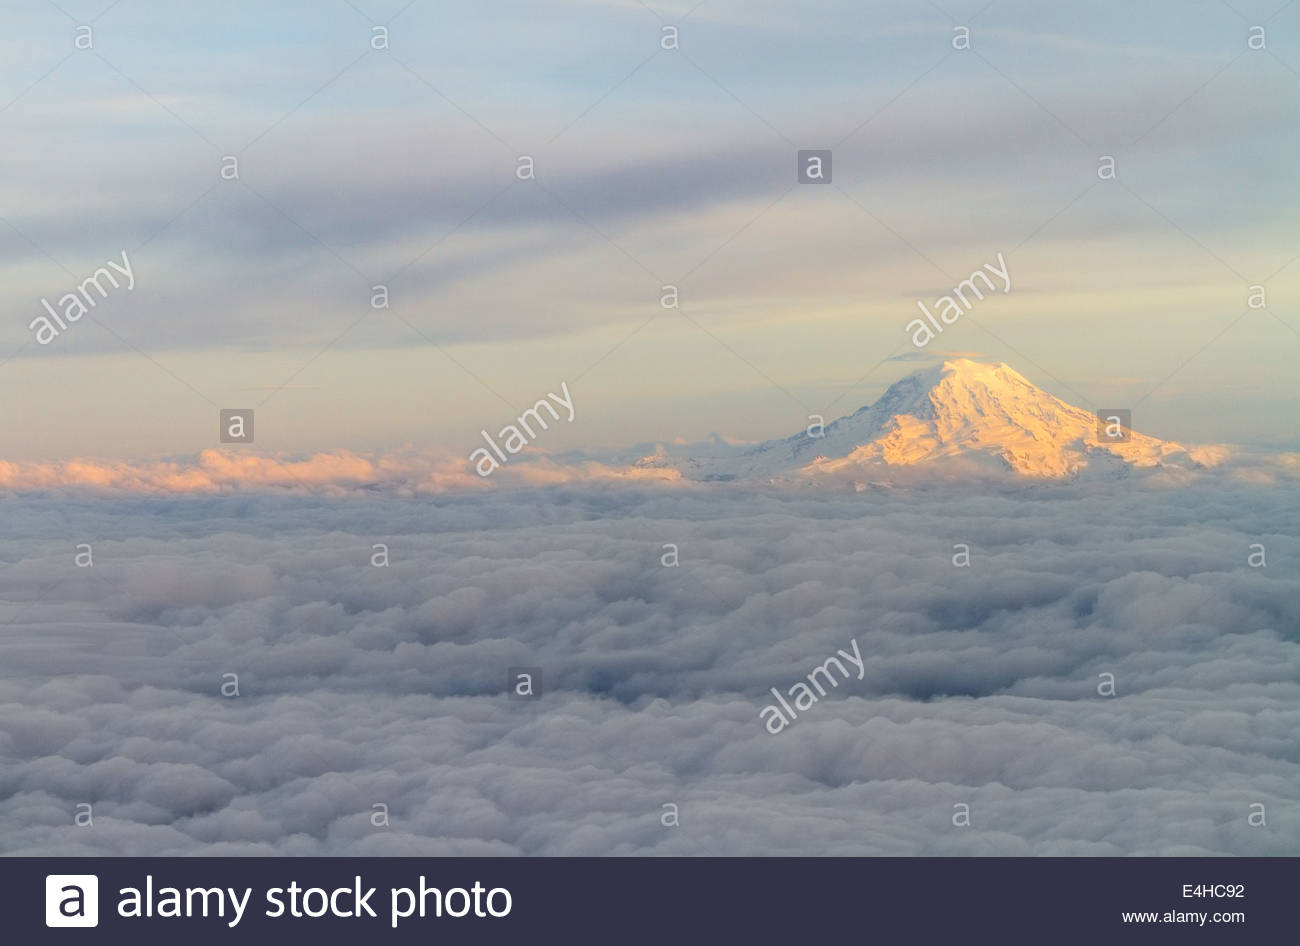 Mount Rainier At Sunset Above The Clouds - Stock Image